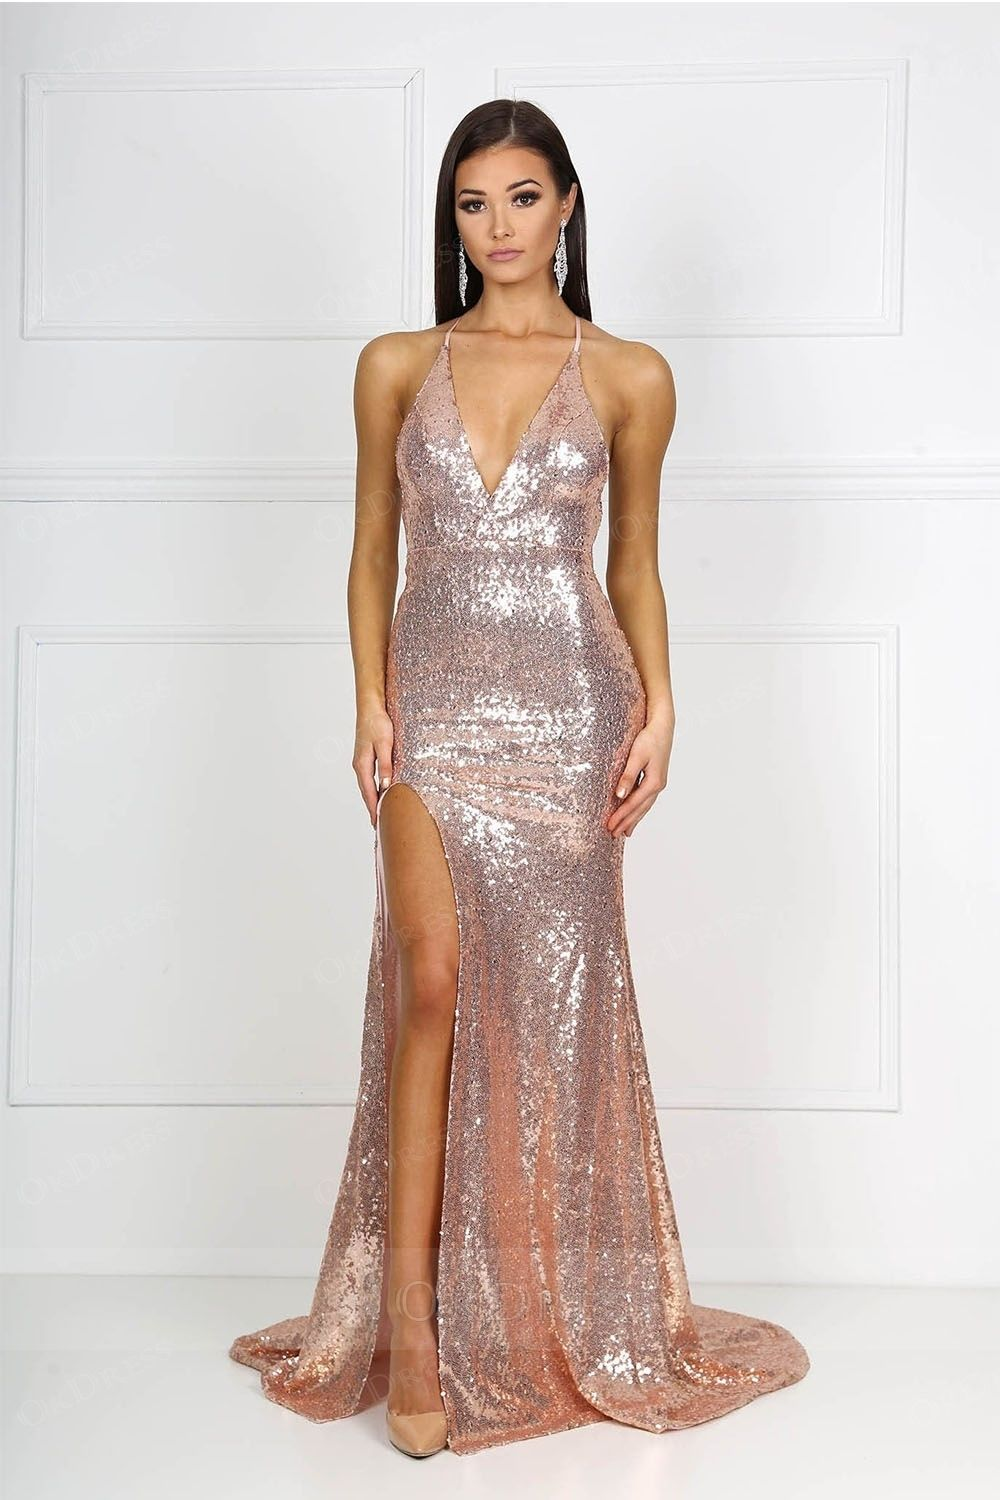 Fomal sequin front slit sequin formal dresses with low back by